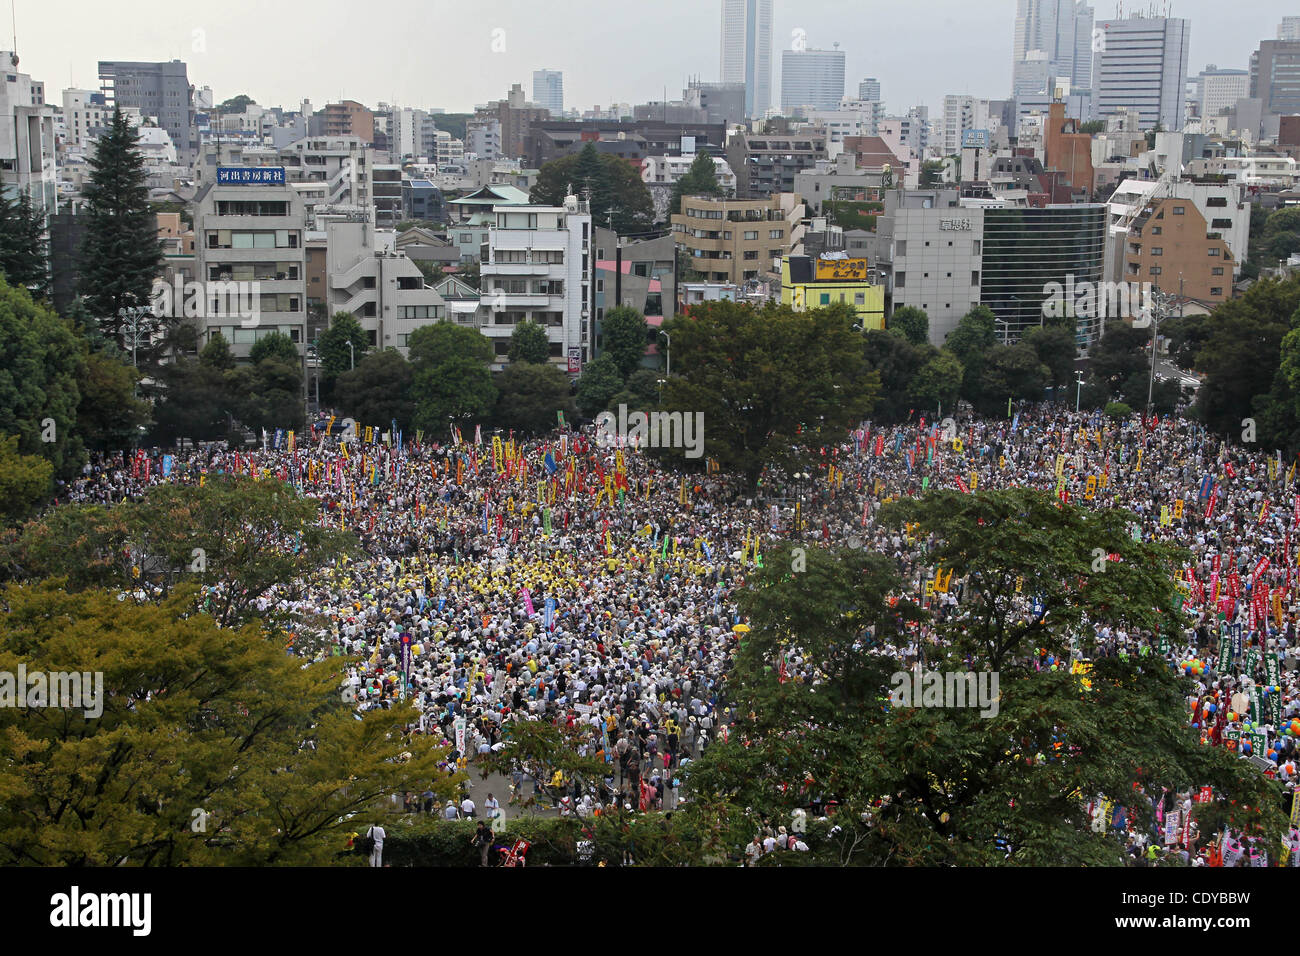 Sept. 19, 2011 - Tokyo, Japan - Thousands of an anti-nuclear protest demonstrate during NO NUKES MORE HEARTS 9.19 - Stock Image